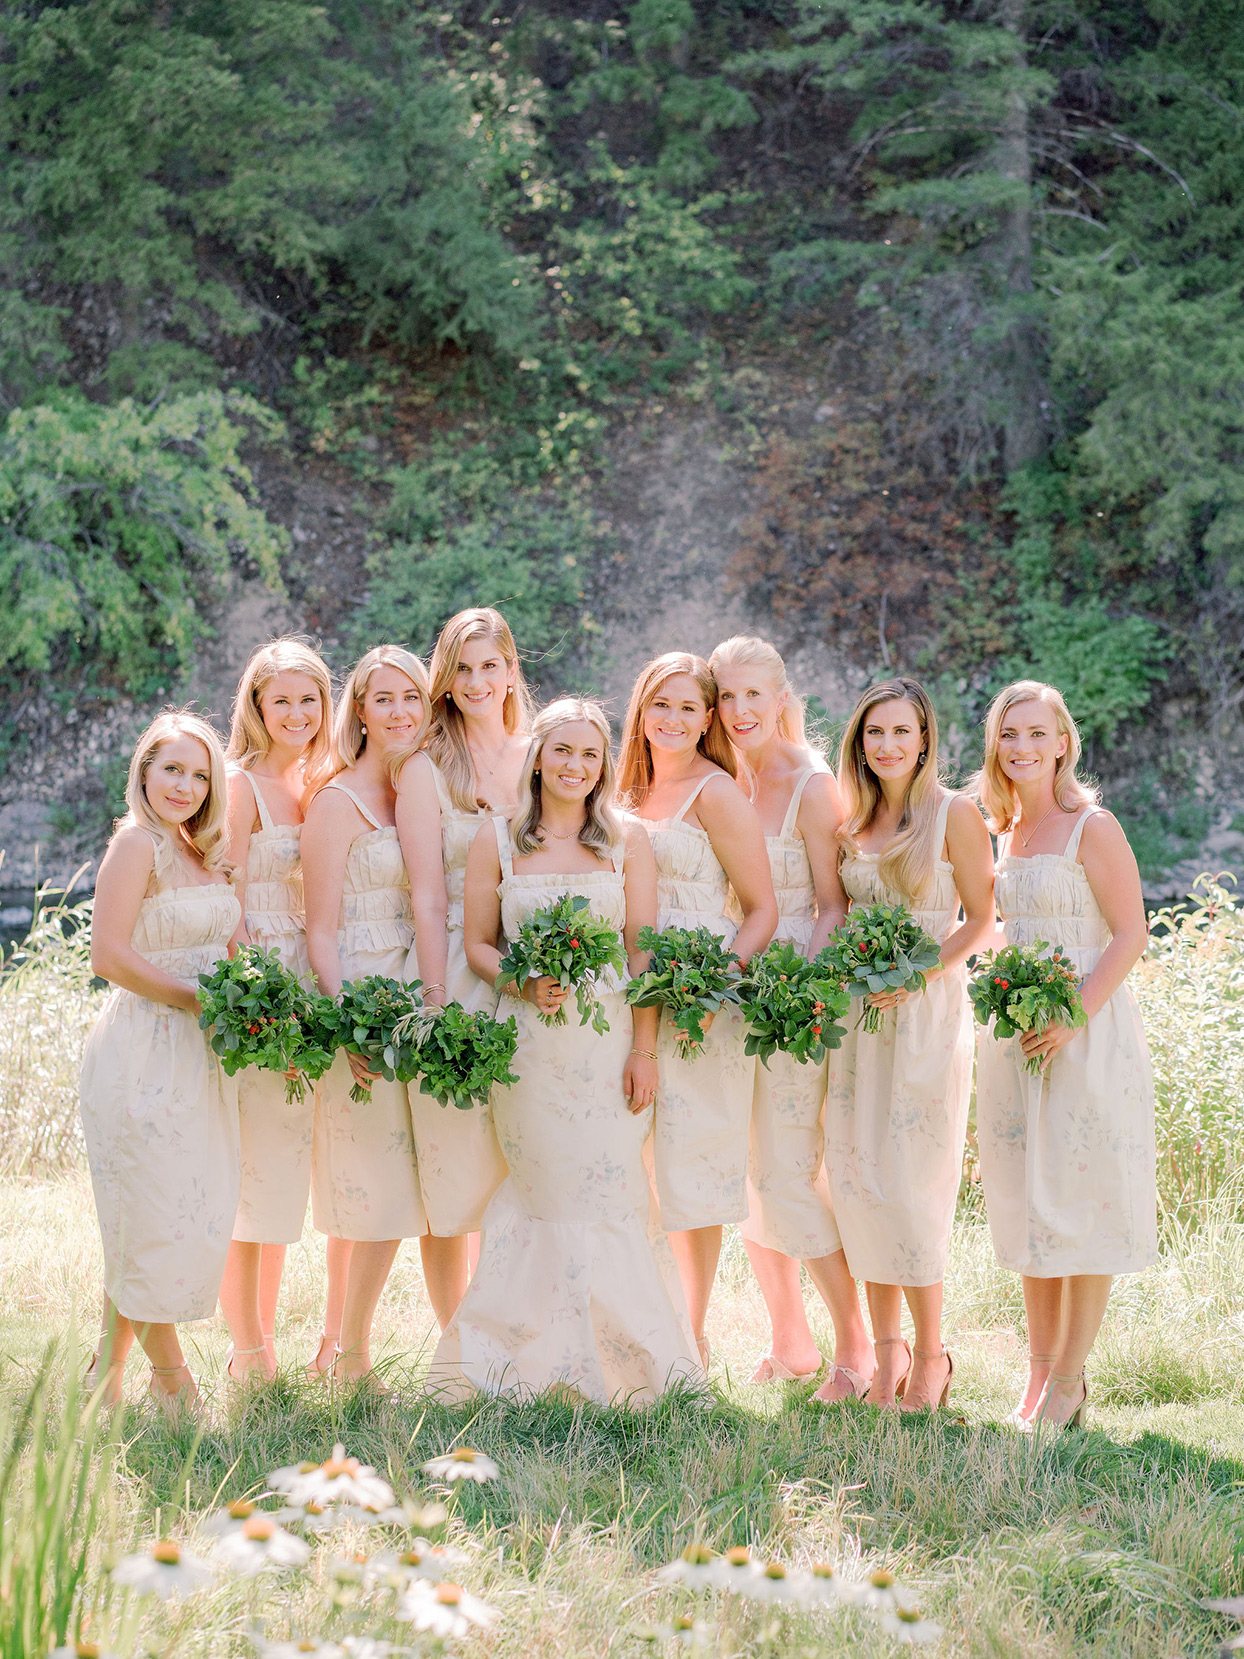 bridesmaids in muted floral print dresses standing in grassy field